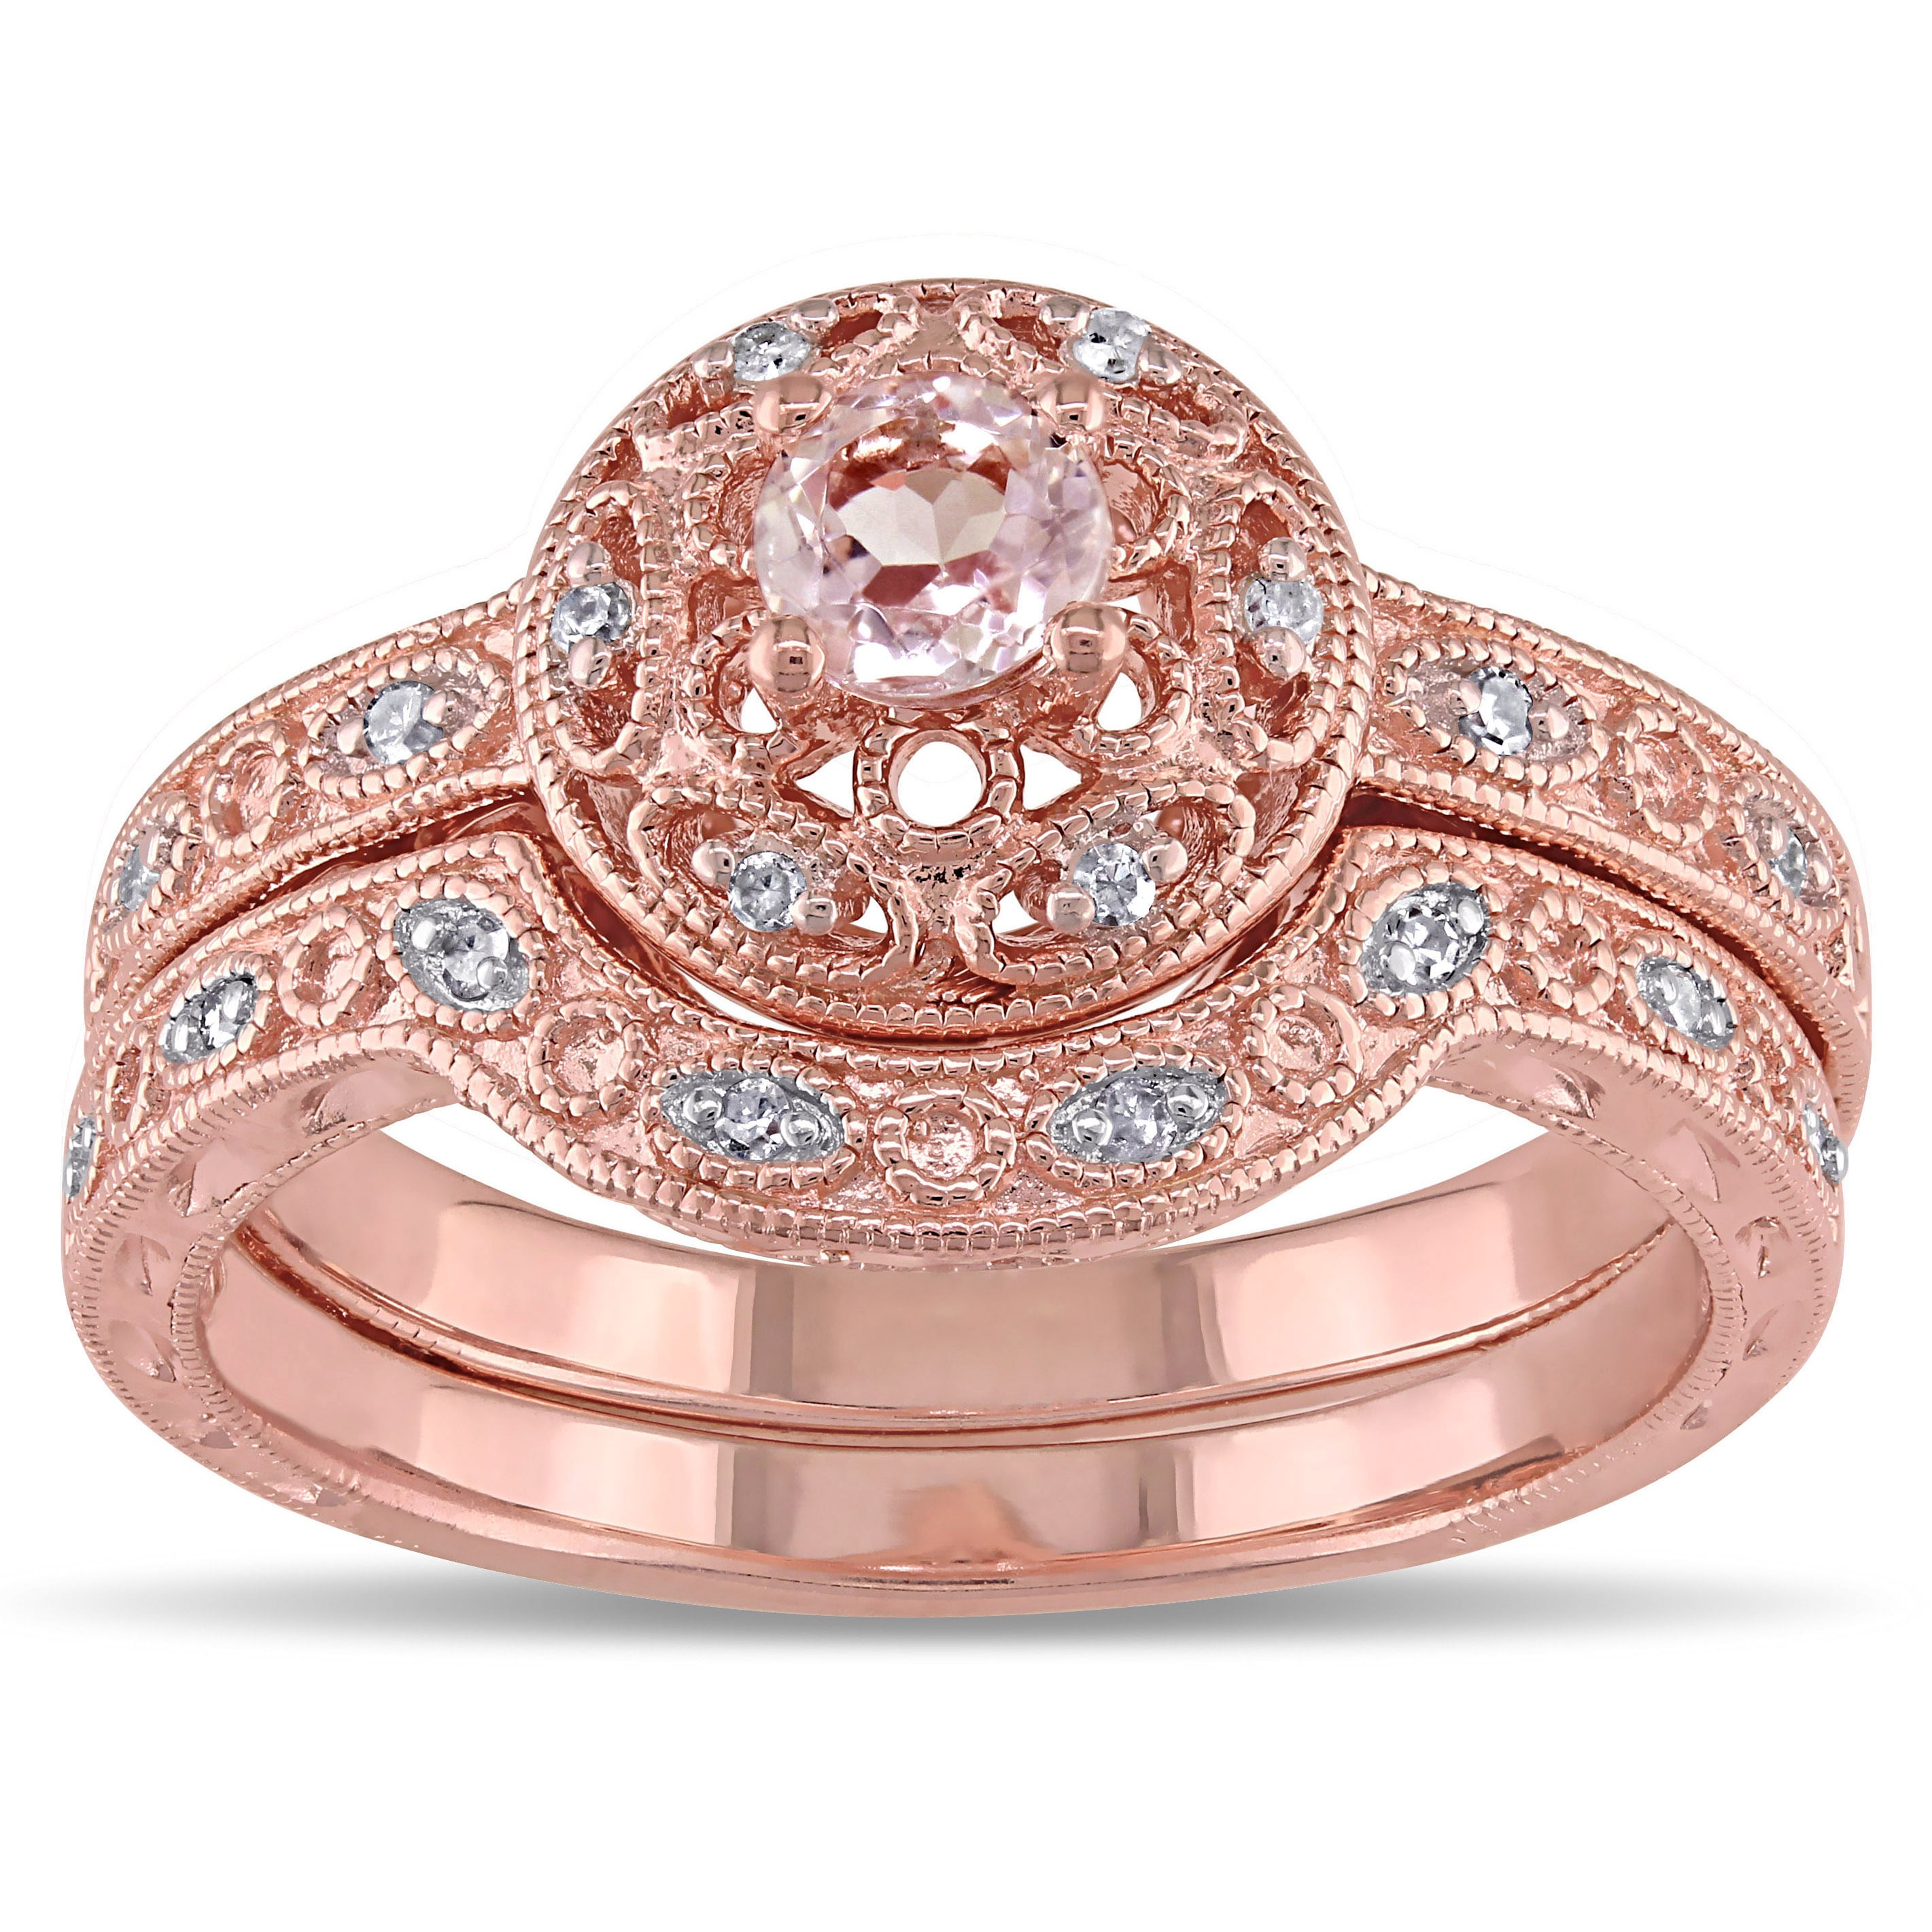 Morganite, Vintage Rings | Find Great Jewelry Deals Shopping at ...